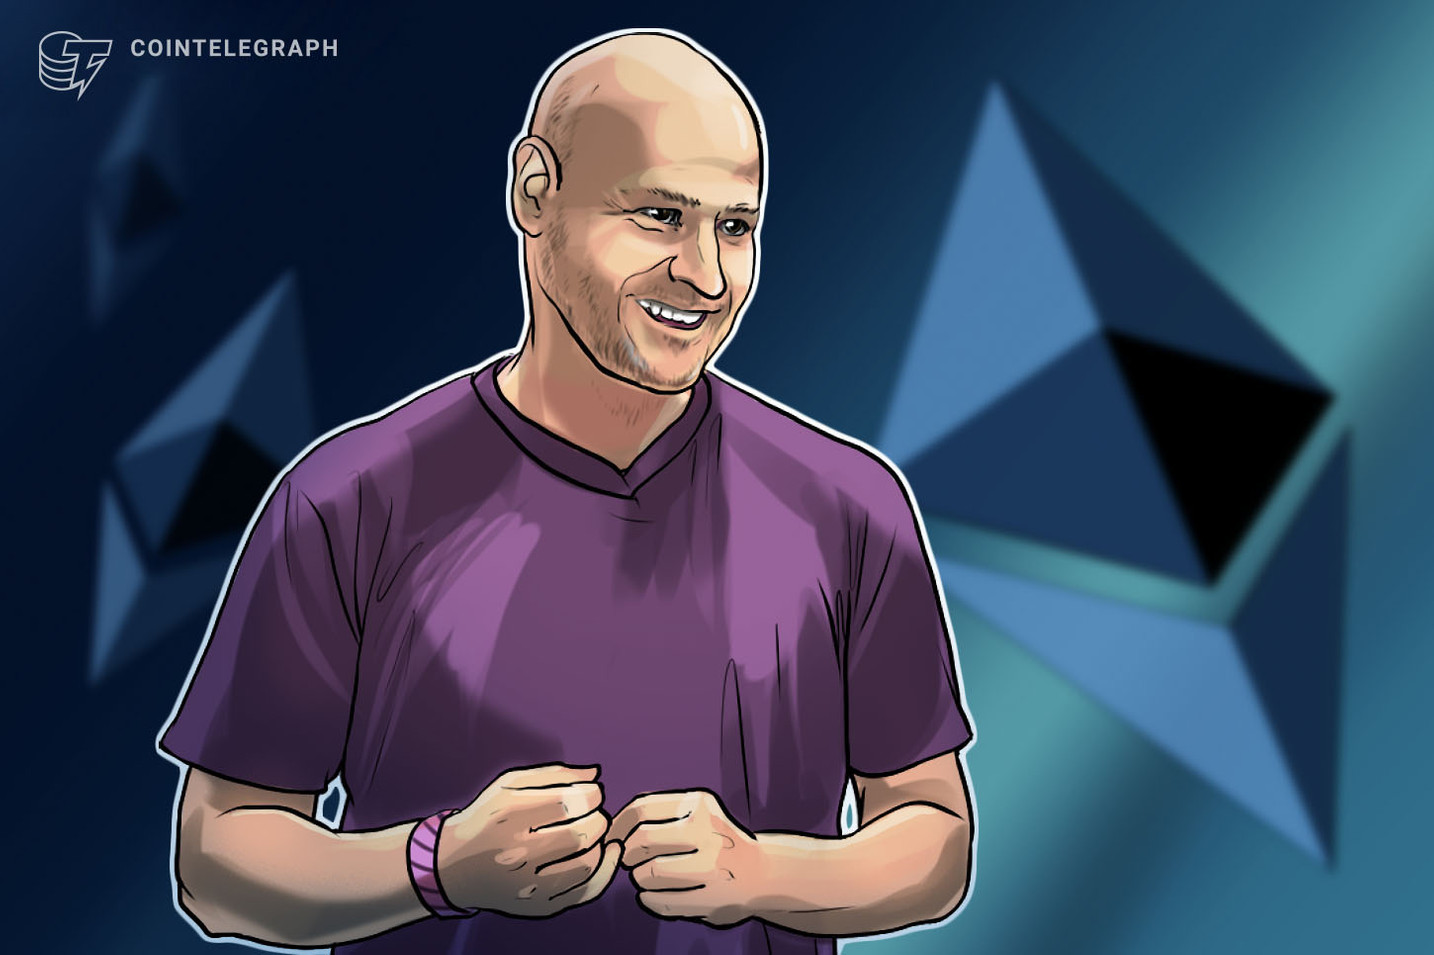 Para Joe Lubin, China evitará os 'aspectos descentralizadores' da blockchain